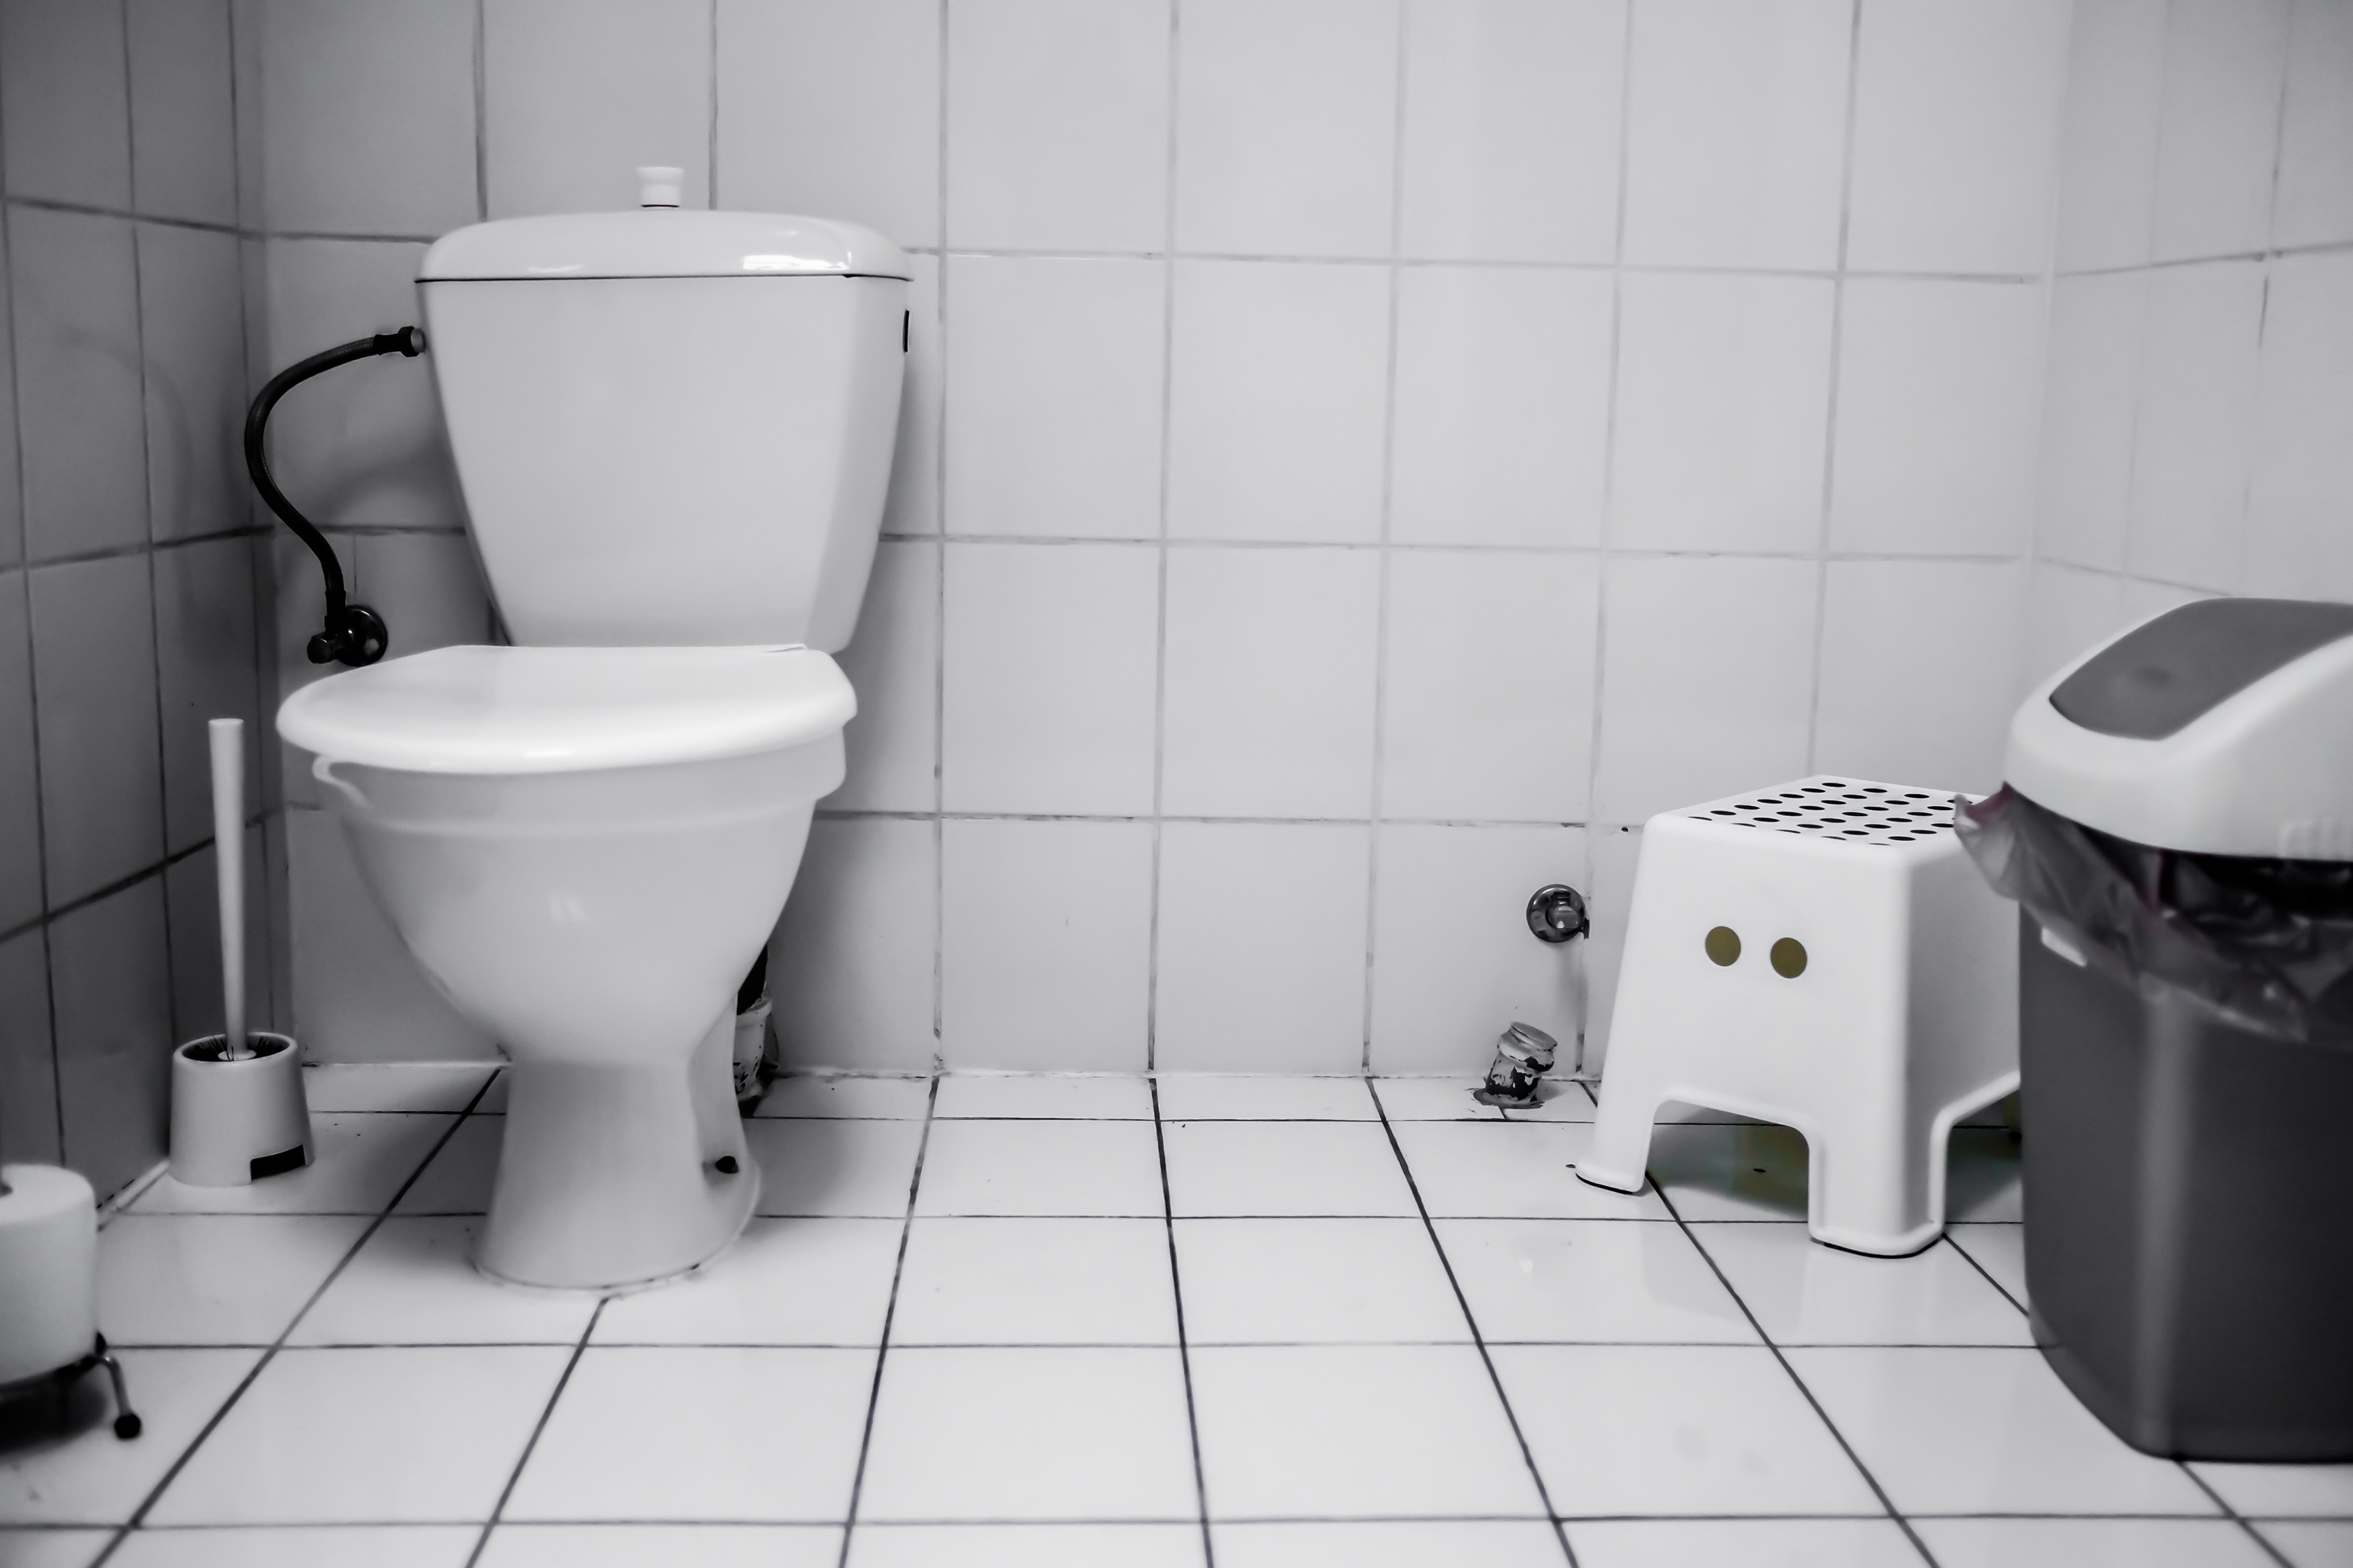 How to Repair the Floor Under a Toilet | Hunker